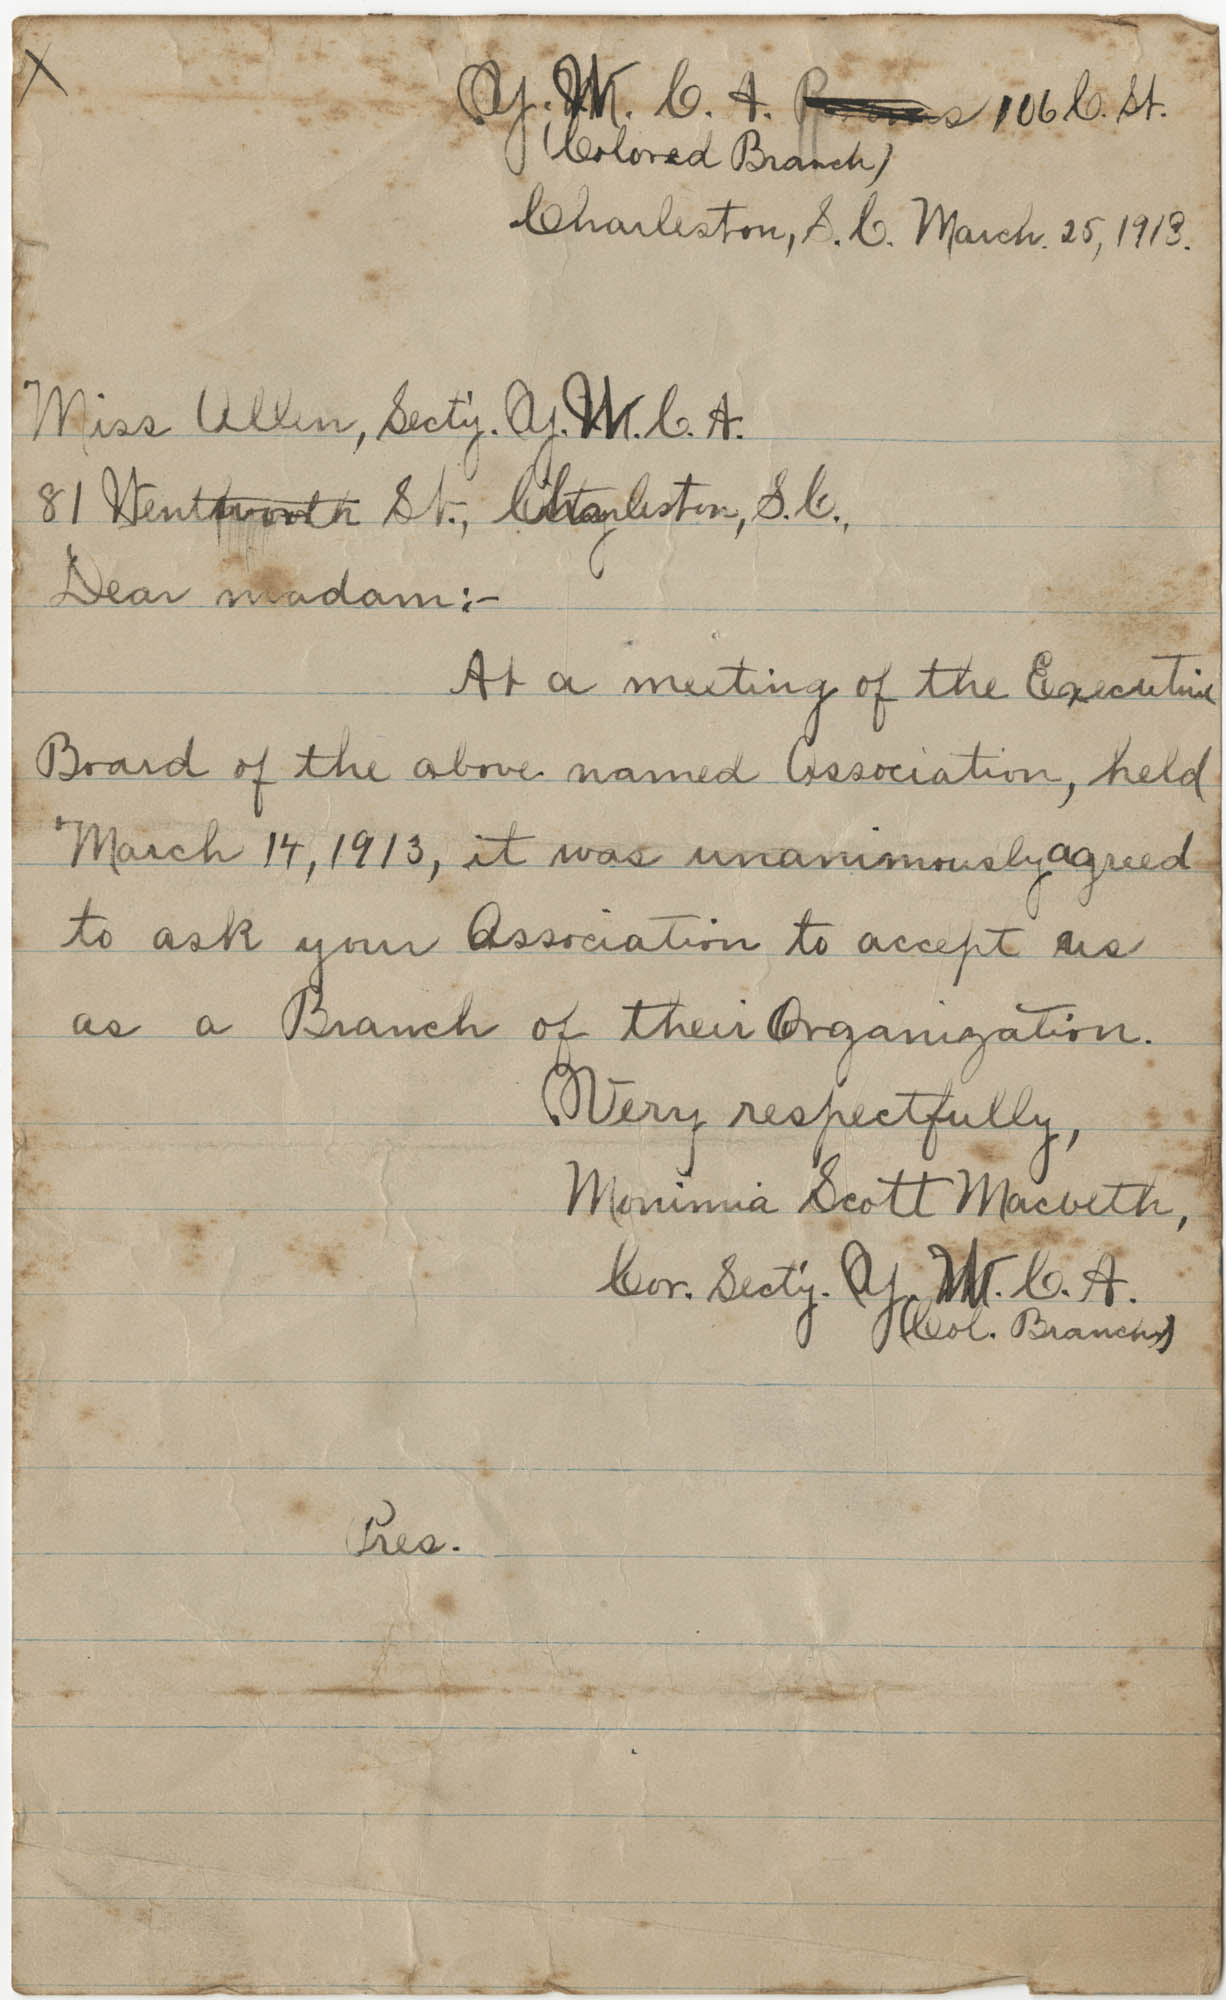 Letter from Monimia Scott Macbeth to Miss Allen, March 25, 1918